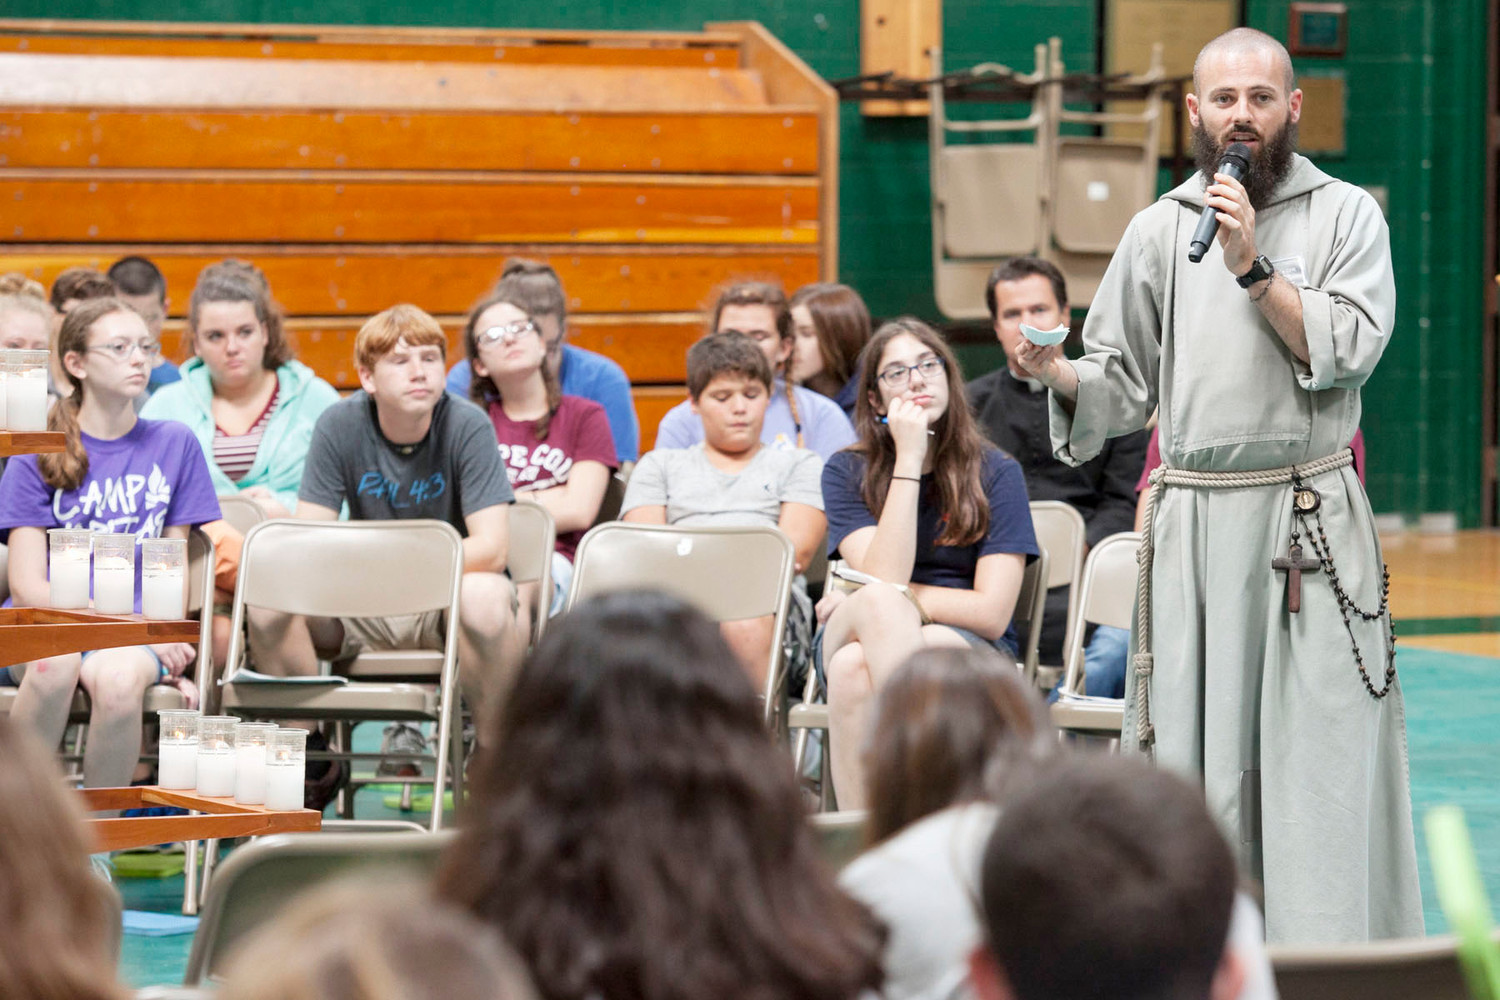 TEEN RETREAT—Brother Benjamin Emmanuel, C.F.R., answers a written question from a camper during a question-and-answer session at the Fearless Retreat at John A. Coleman Catholic High School in Hurley Sept. 16. Brother Emmanuel was on the panel with Father Chris Argano, vocations director for the archdiocese; Matthew Breslin, a seminarian at St. Joseph's Seminary, Dunwoodie; and Jennifer Edwards, executive assistant of Fearless Retreat.